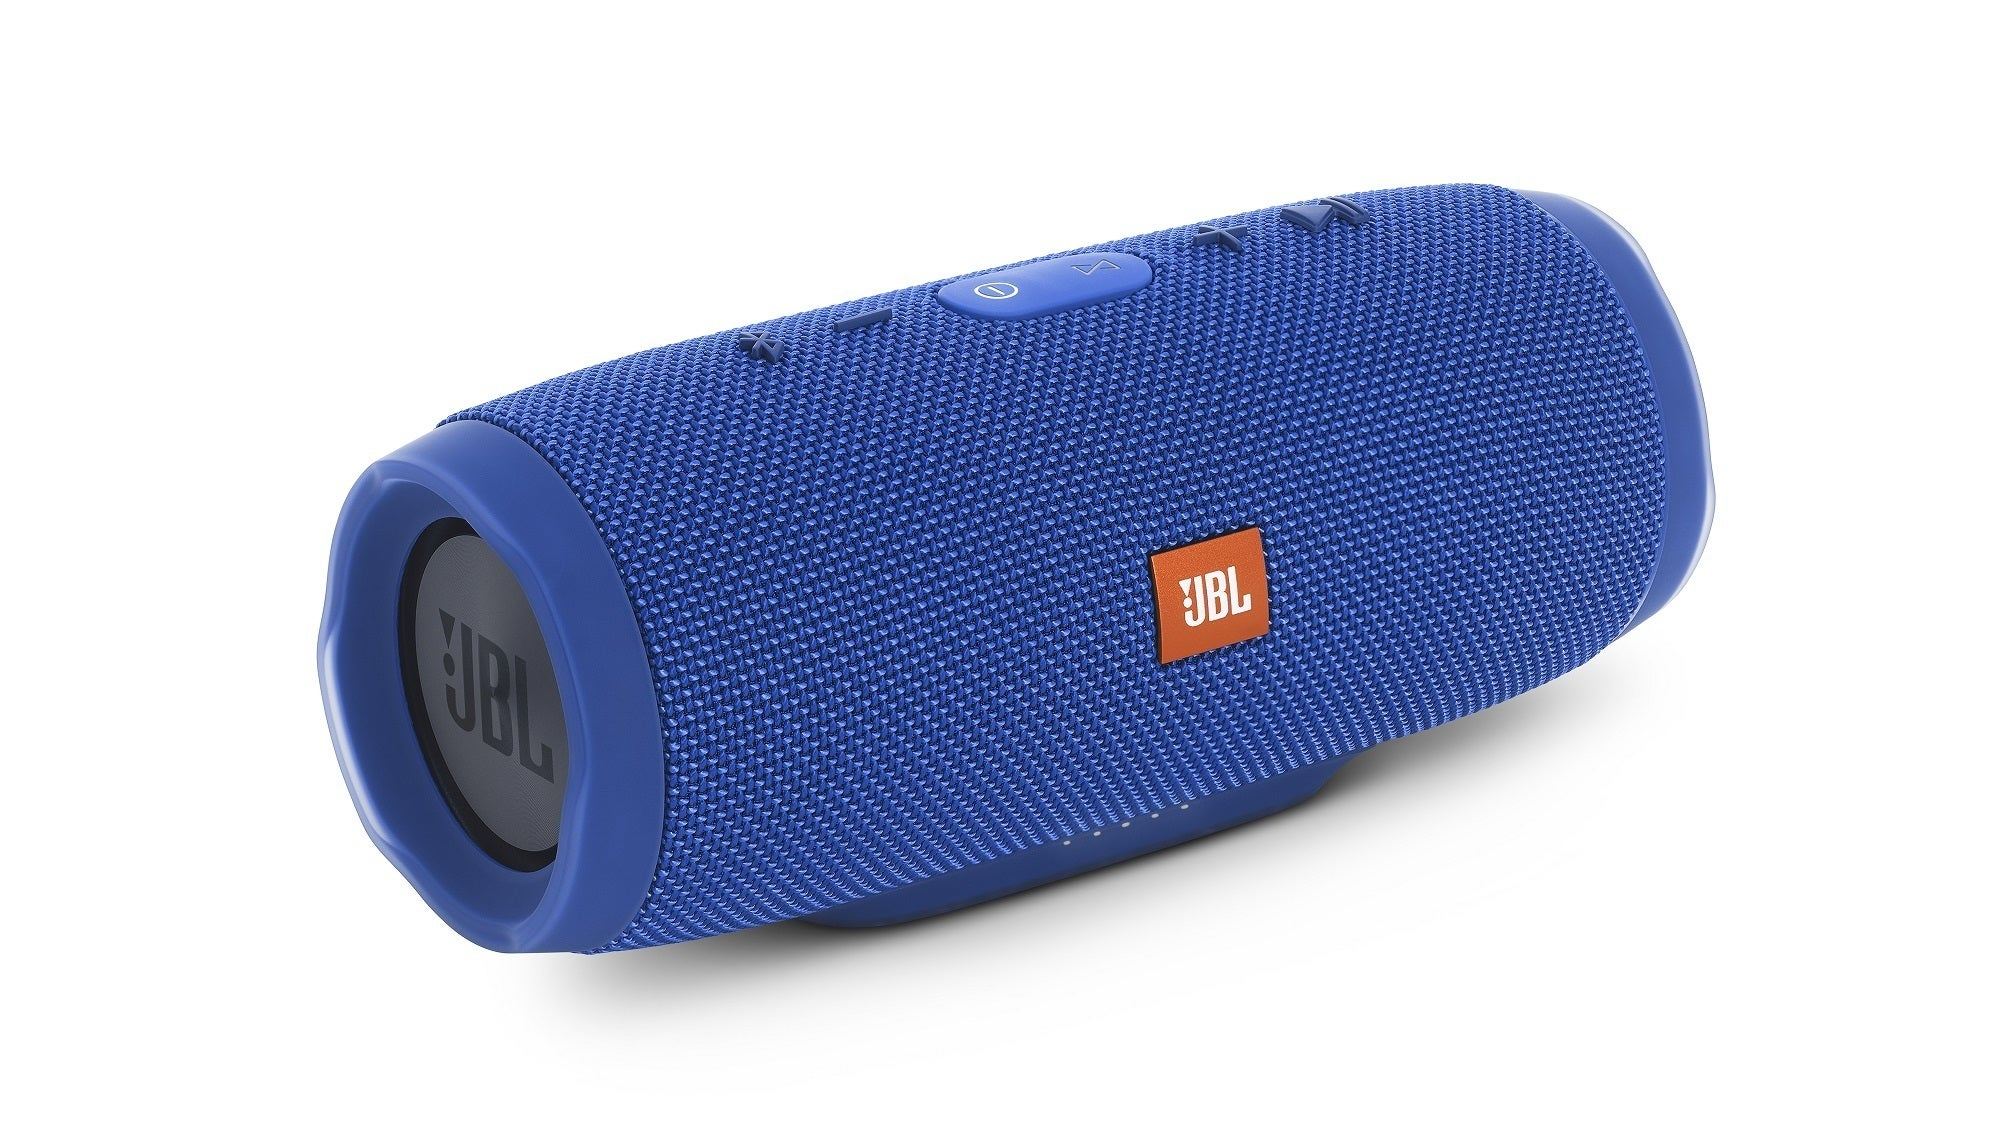 jbl 39 s charge 3 bluetooth speaker review play all day play all night techhive. Black Bedroom Furniture Sets. Home Design Ideas